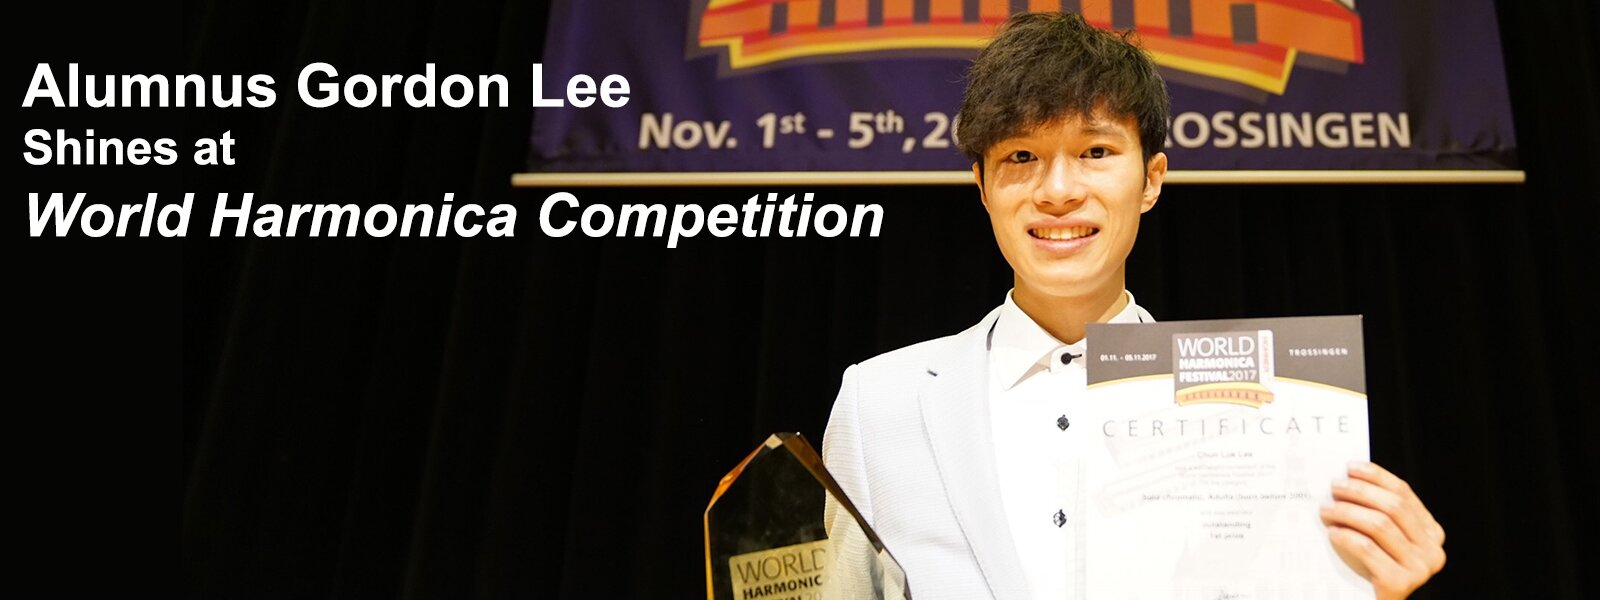 Alumnus Gordon Lee Shines at World Harmonica Competition